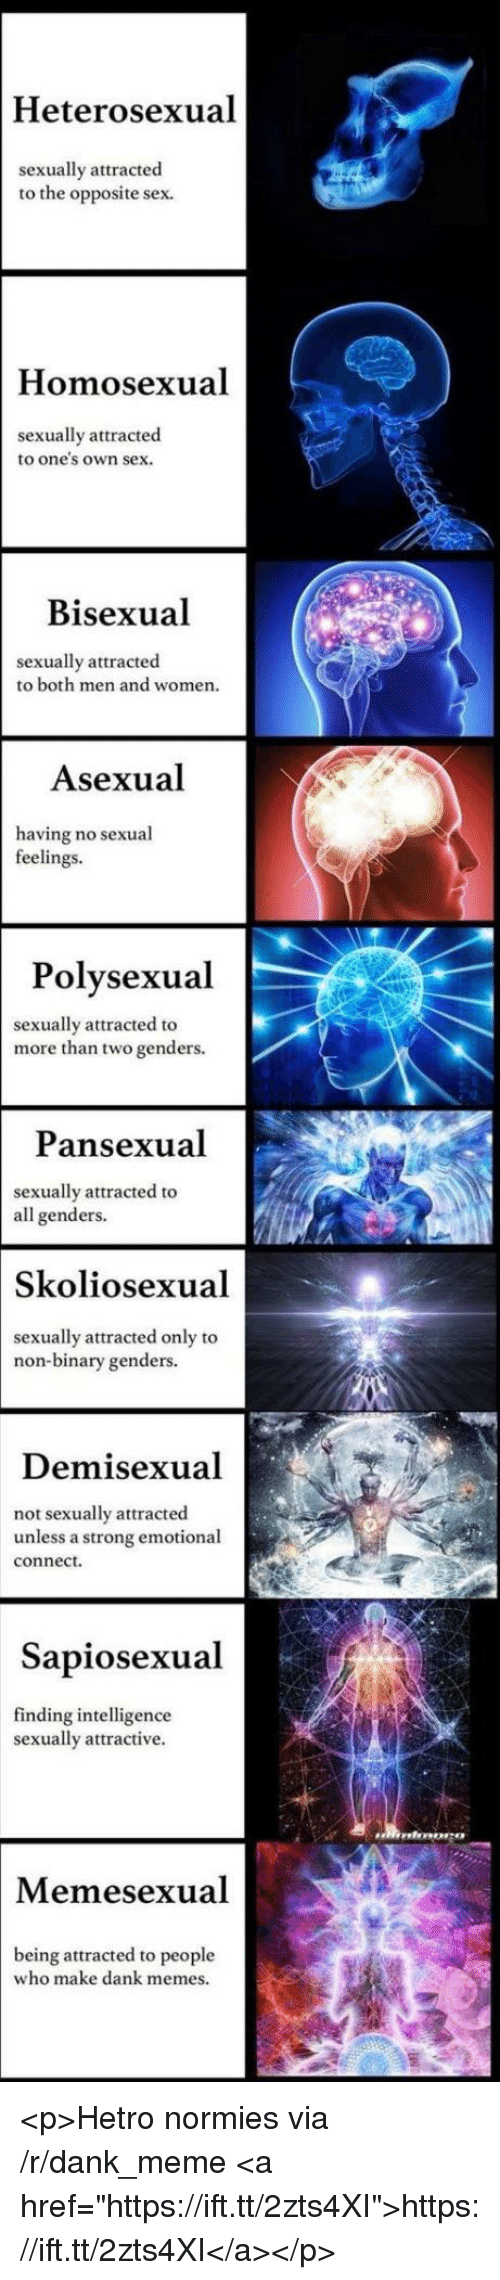 """Dank, Meme, and Memes: Heterosexual  sexually attracted  to the opposite sex.  Homosexual  sexually attracted  to one's own sex.  Bisexual  sexually attracted  to both men and women.  Asexual  having no sexual  feelings.  Polvsexual  sexually attracted to  more than two genders.  Pansexual  sexually attracted to  all genders.  Skoliosexual  sexually attracted only to  non-binary genders.  Demisexual  ot sexually attracted  unless a strong emotional  connect.  Sapiosexual  finding intelligence  sexually attractive.  Memesexual  being attracted to people  who make dank memes. <p>Hetro normies via /r/dank_meme <a href=""""https://ift.tt/2zts4XI"""">https://ift.tt/2zts4XI</a></p>"""